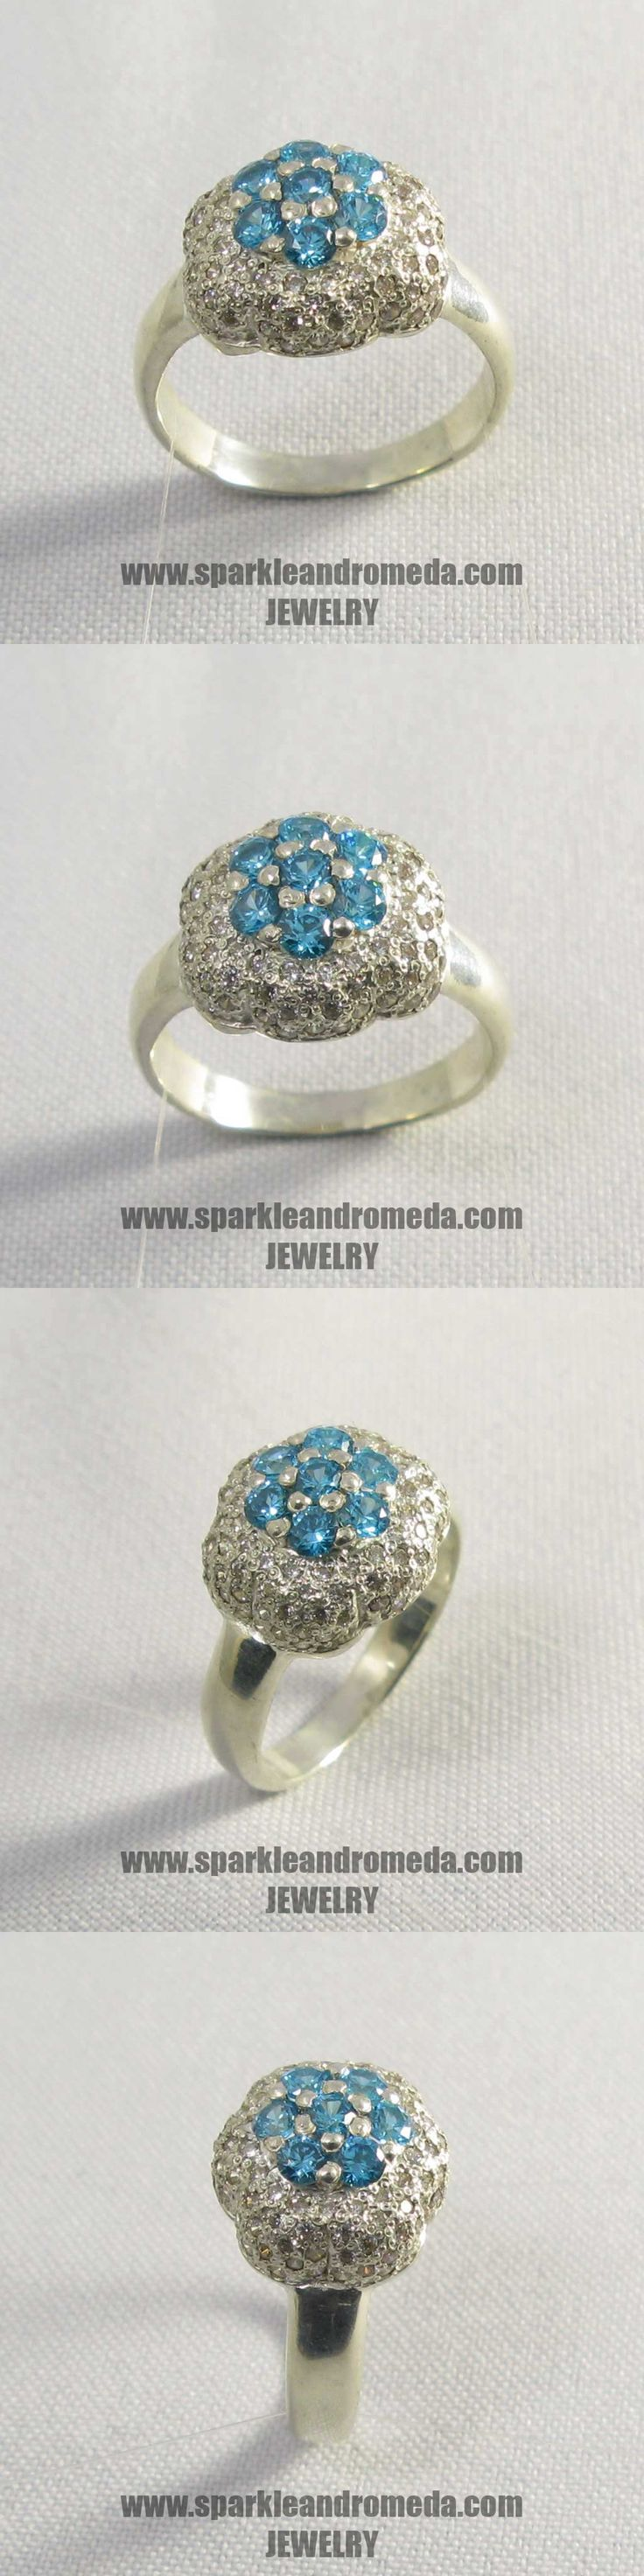 Sterling 925 silver ring with 7 round 2,5 mm blue color and 92 round 1,25 mm white color cubic zirconia gemstones.